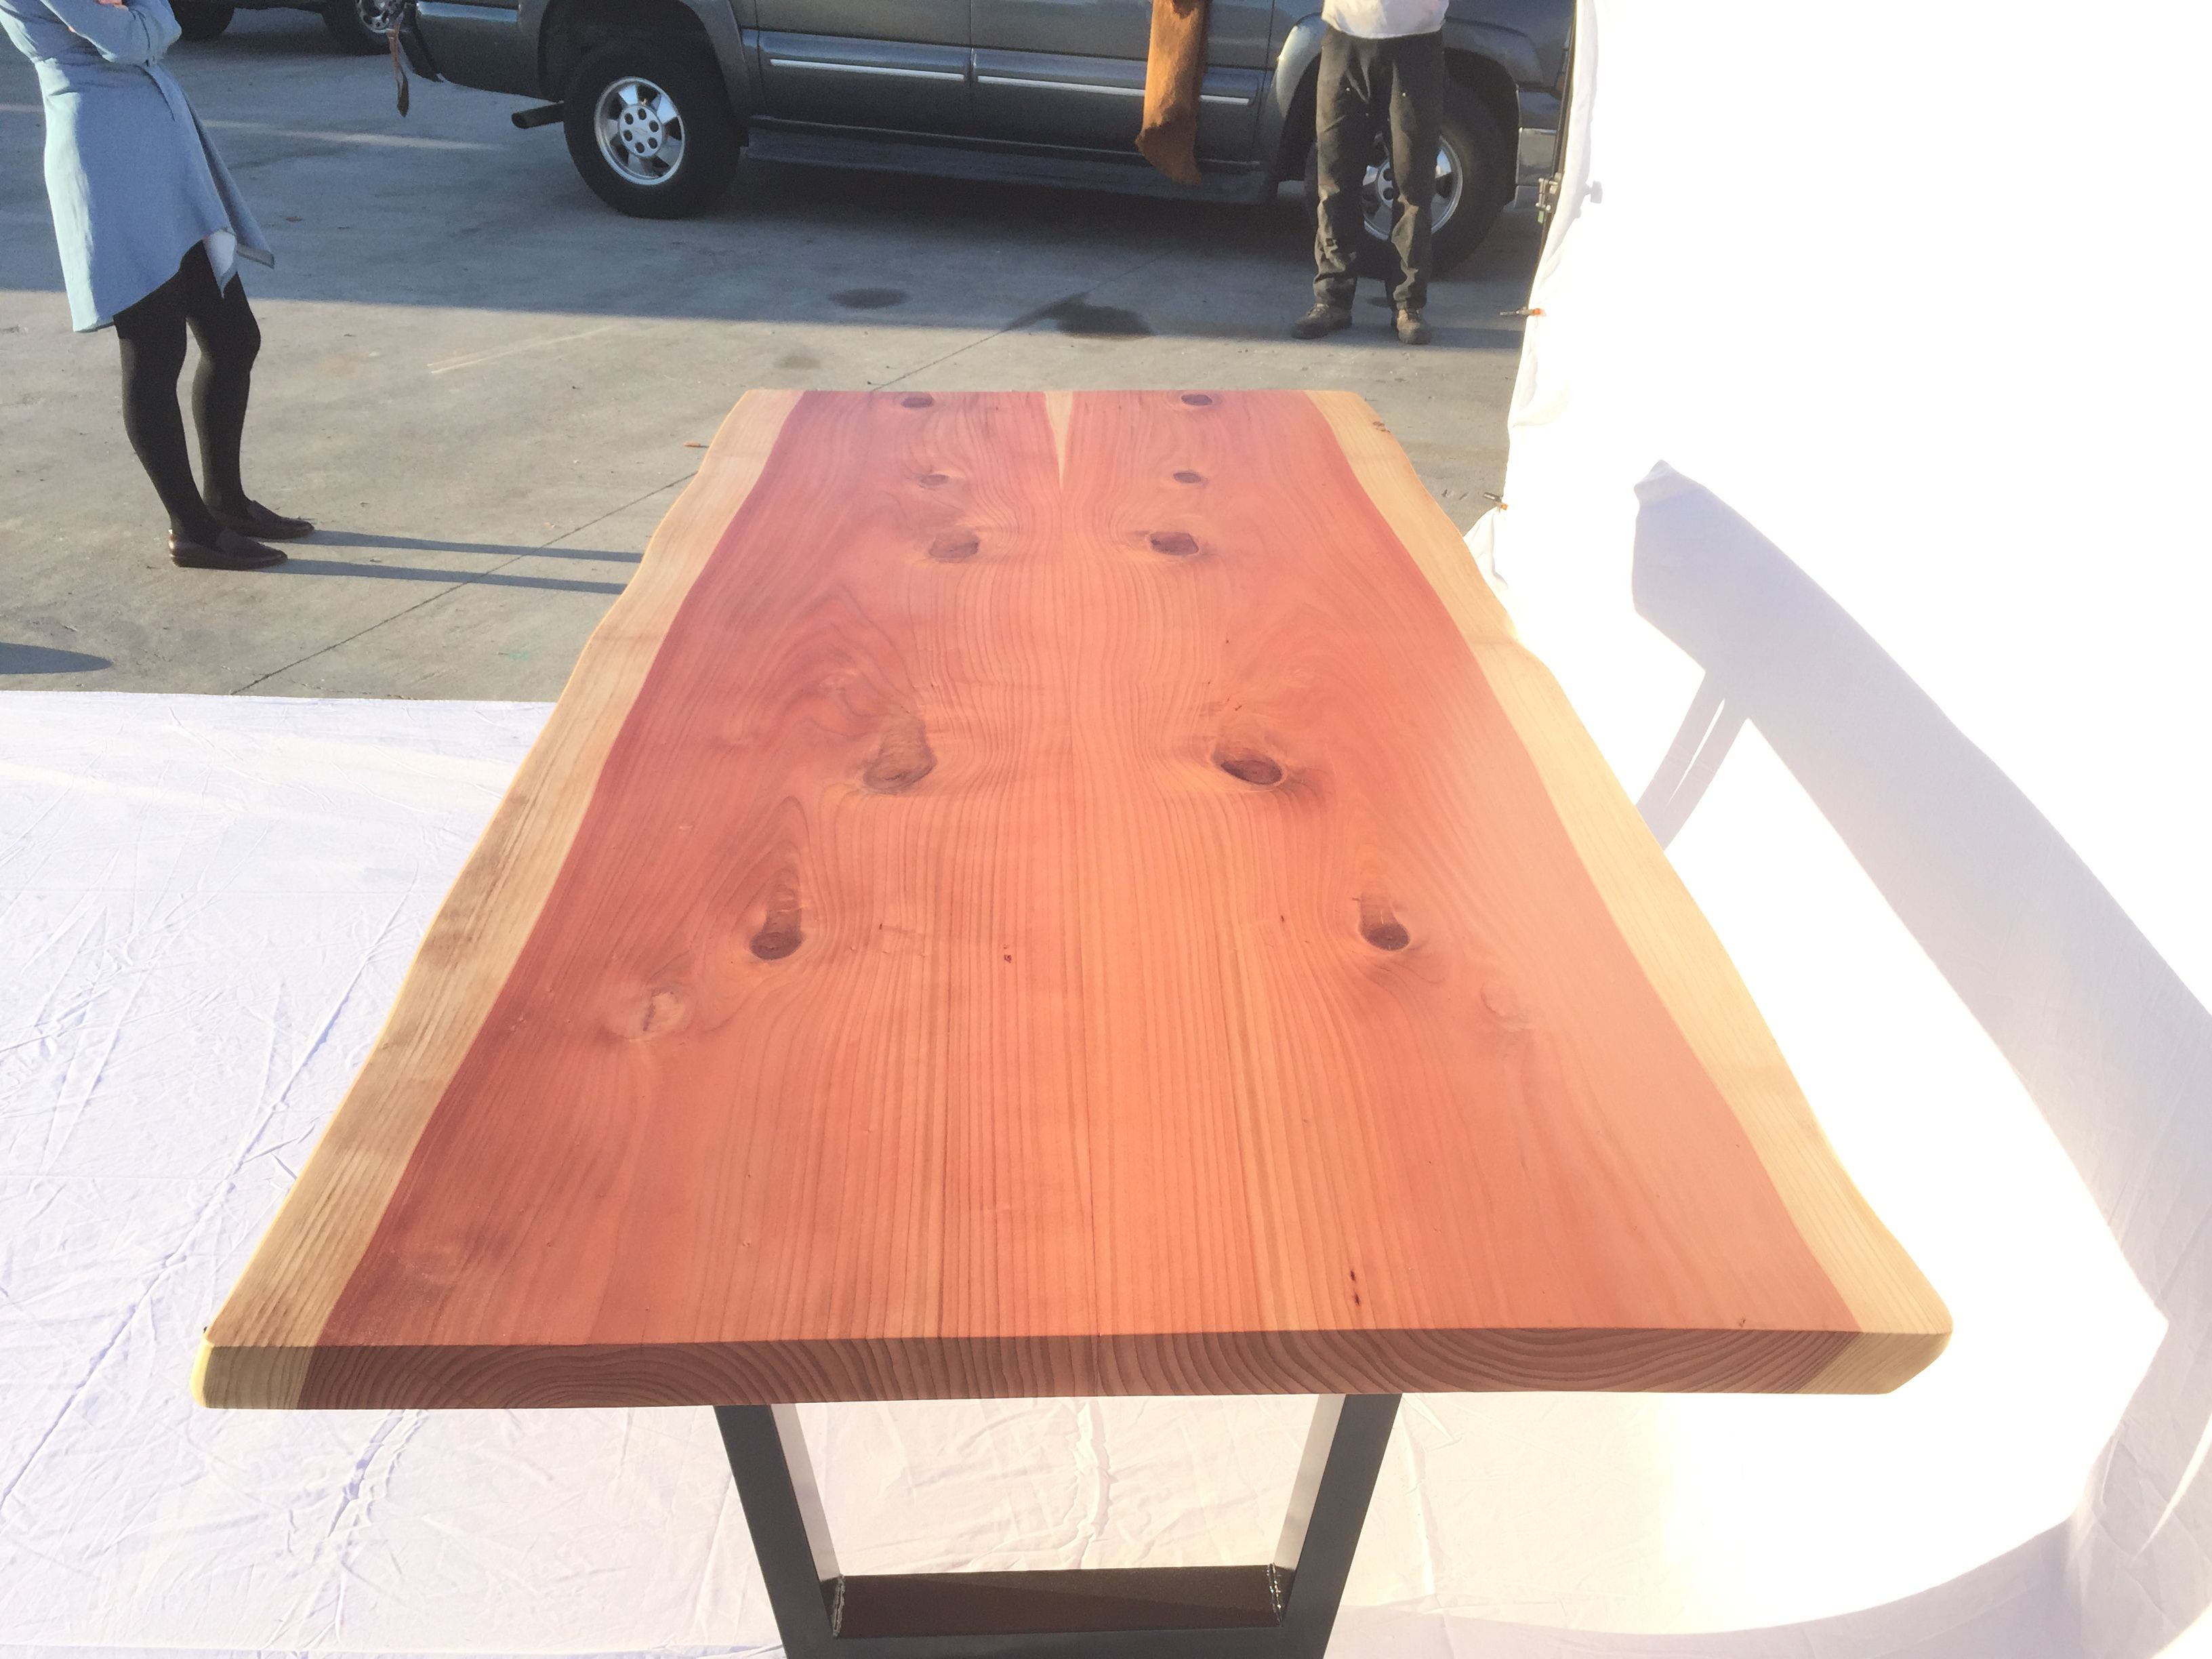 c8a53384e2d0650775bcbd4553a01872 Top Result 50 Lovely Redwood Coffee Table Photos 2017 Hgd6